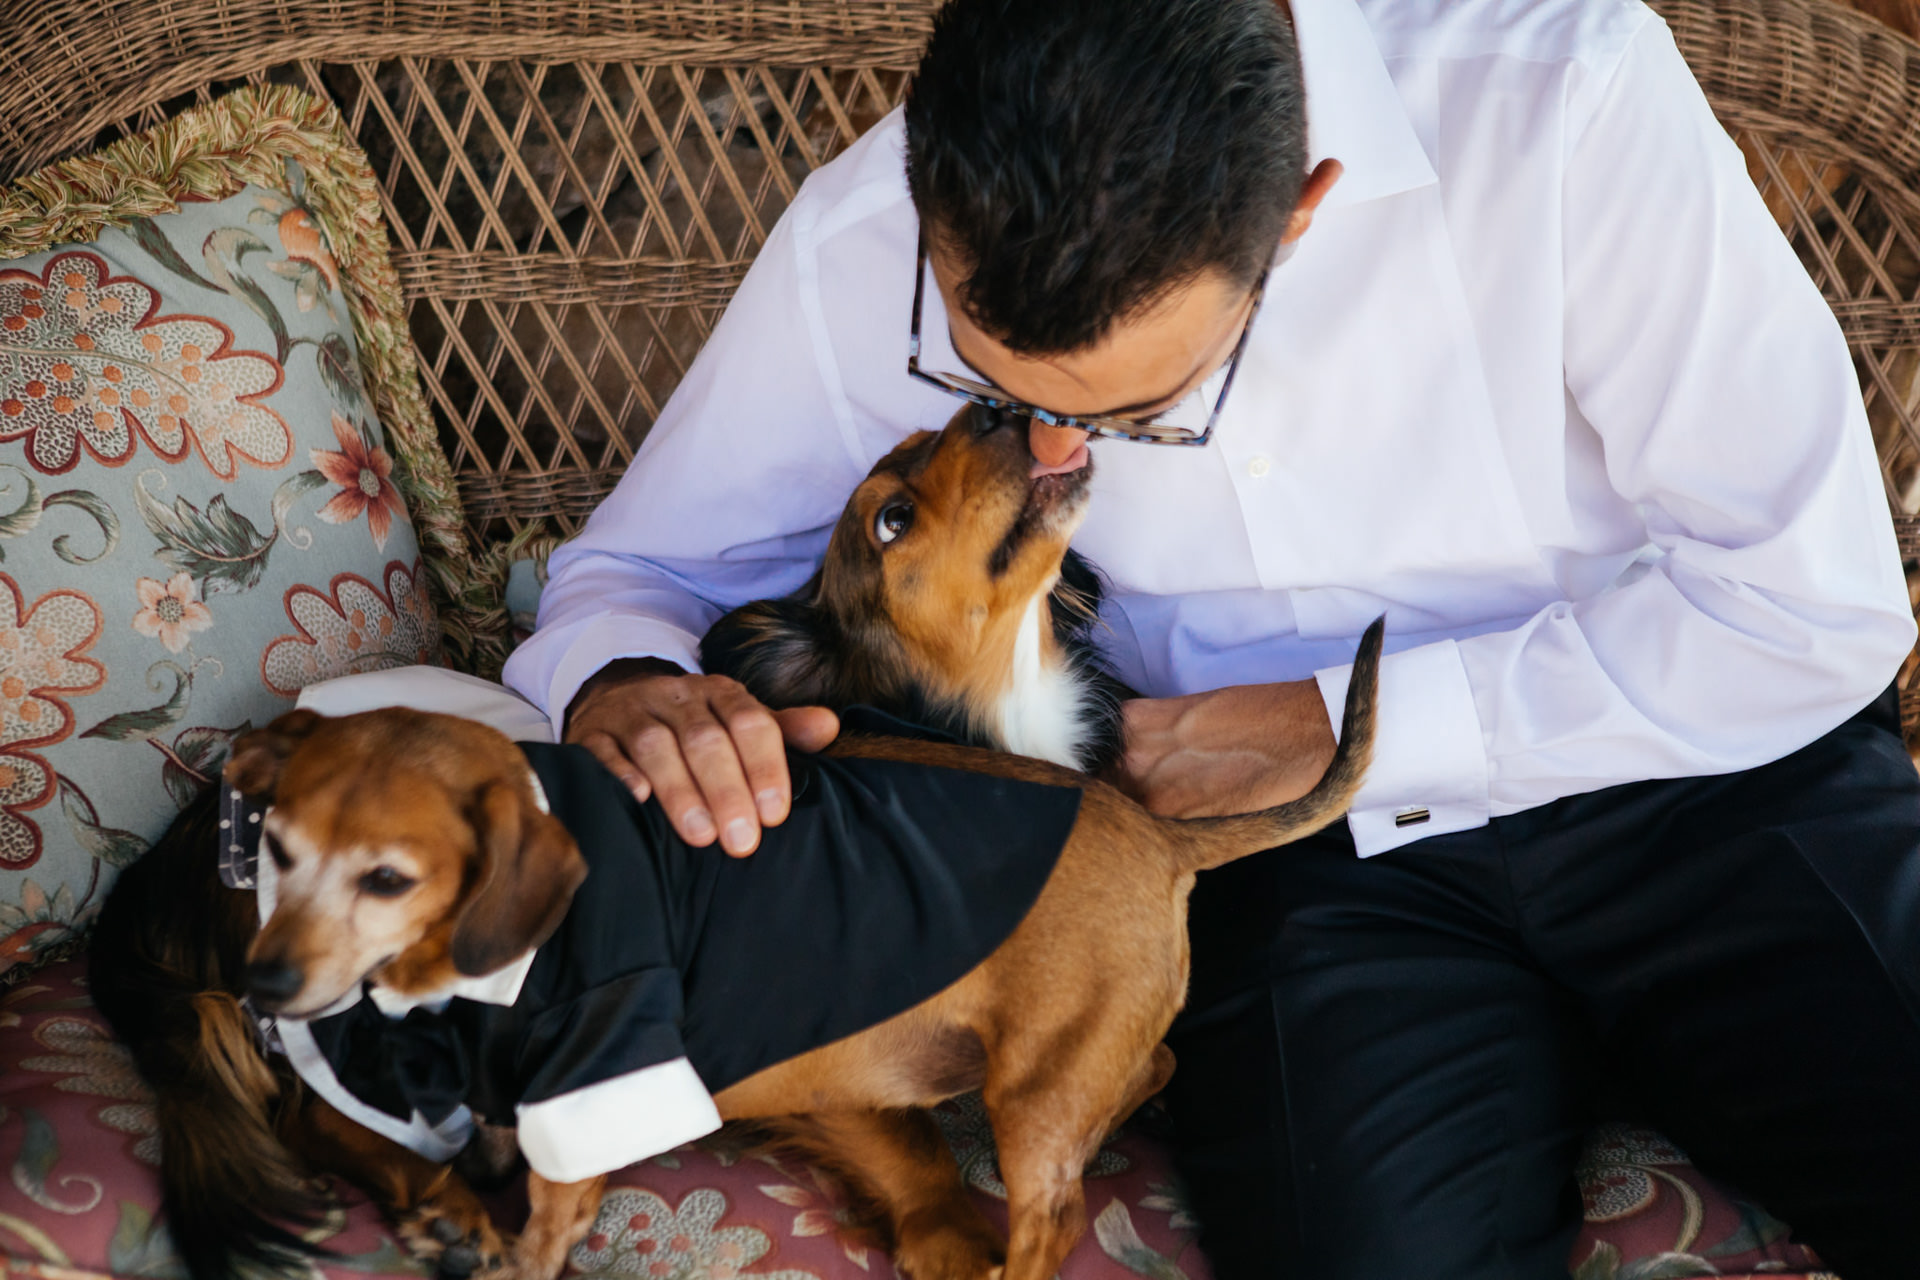 Dogs in Wedding Clothes Faces Photography